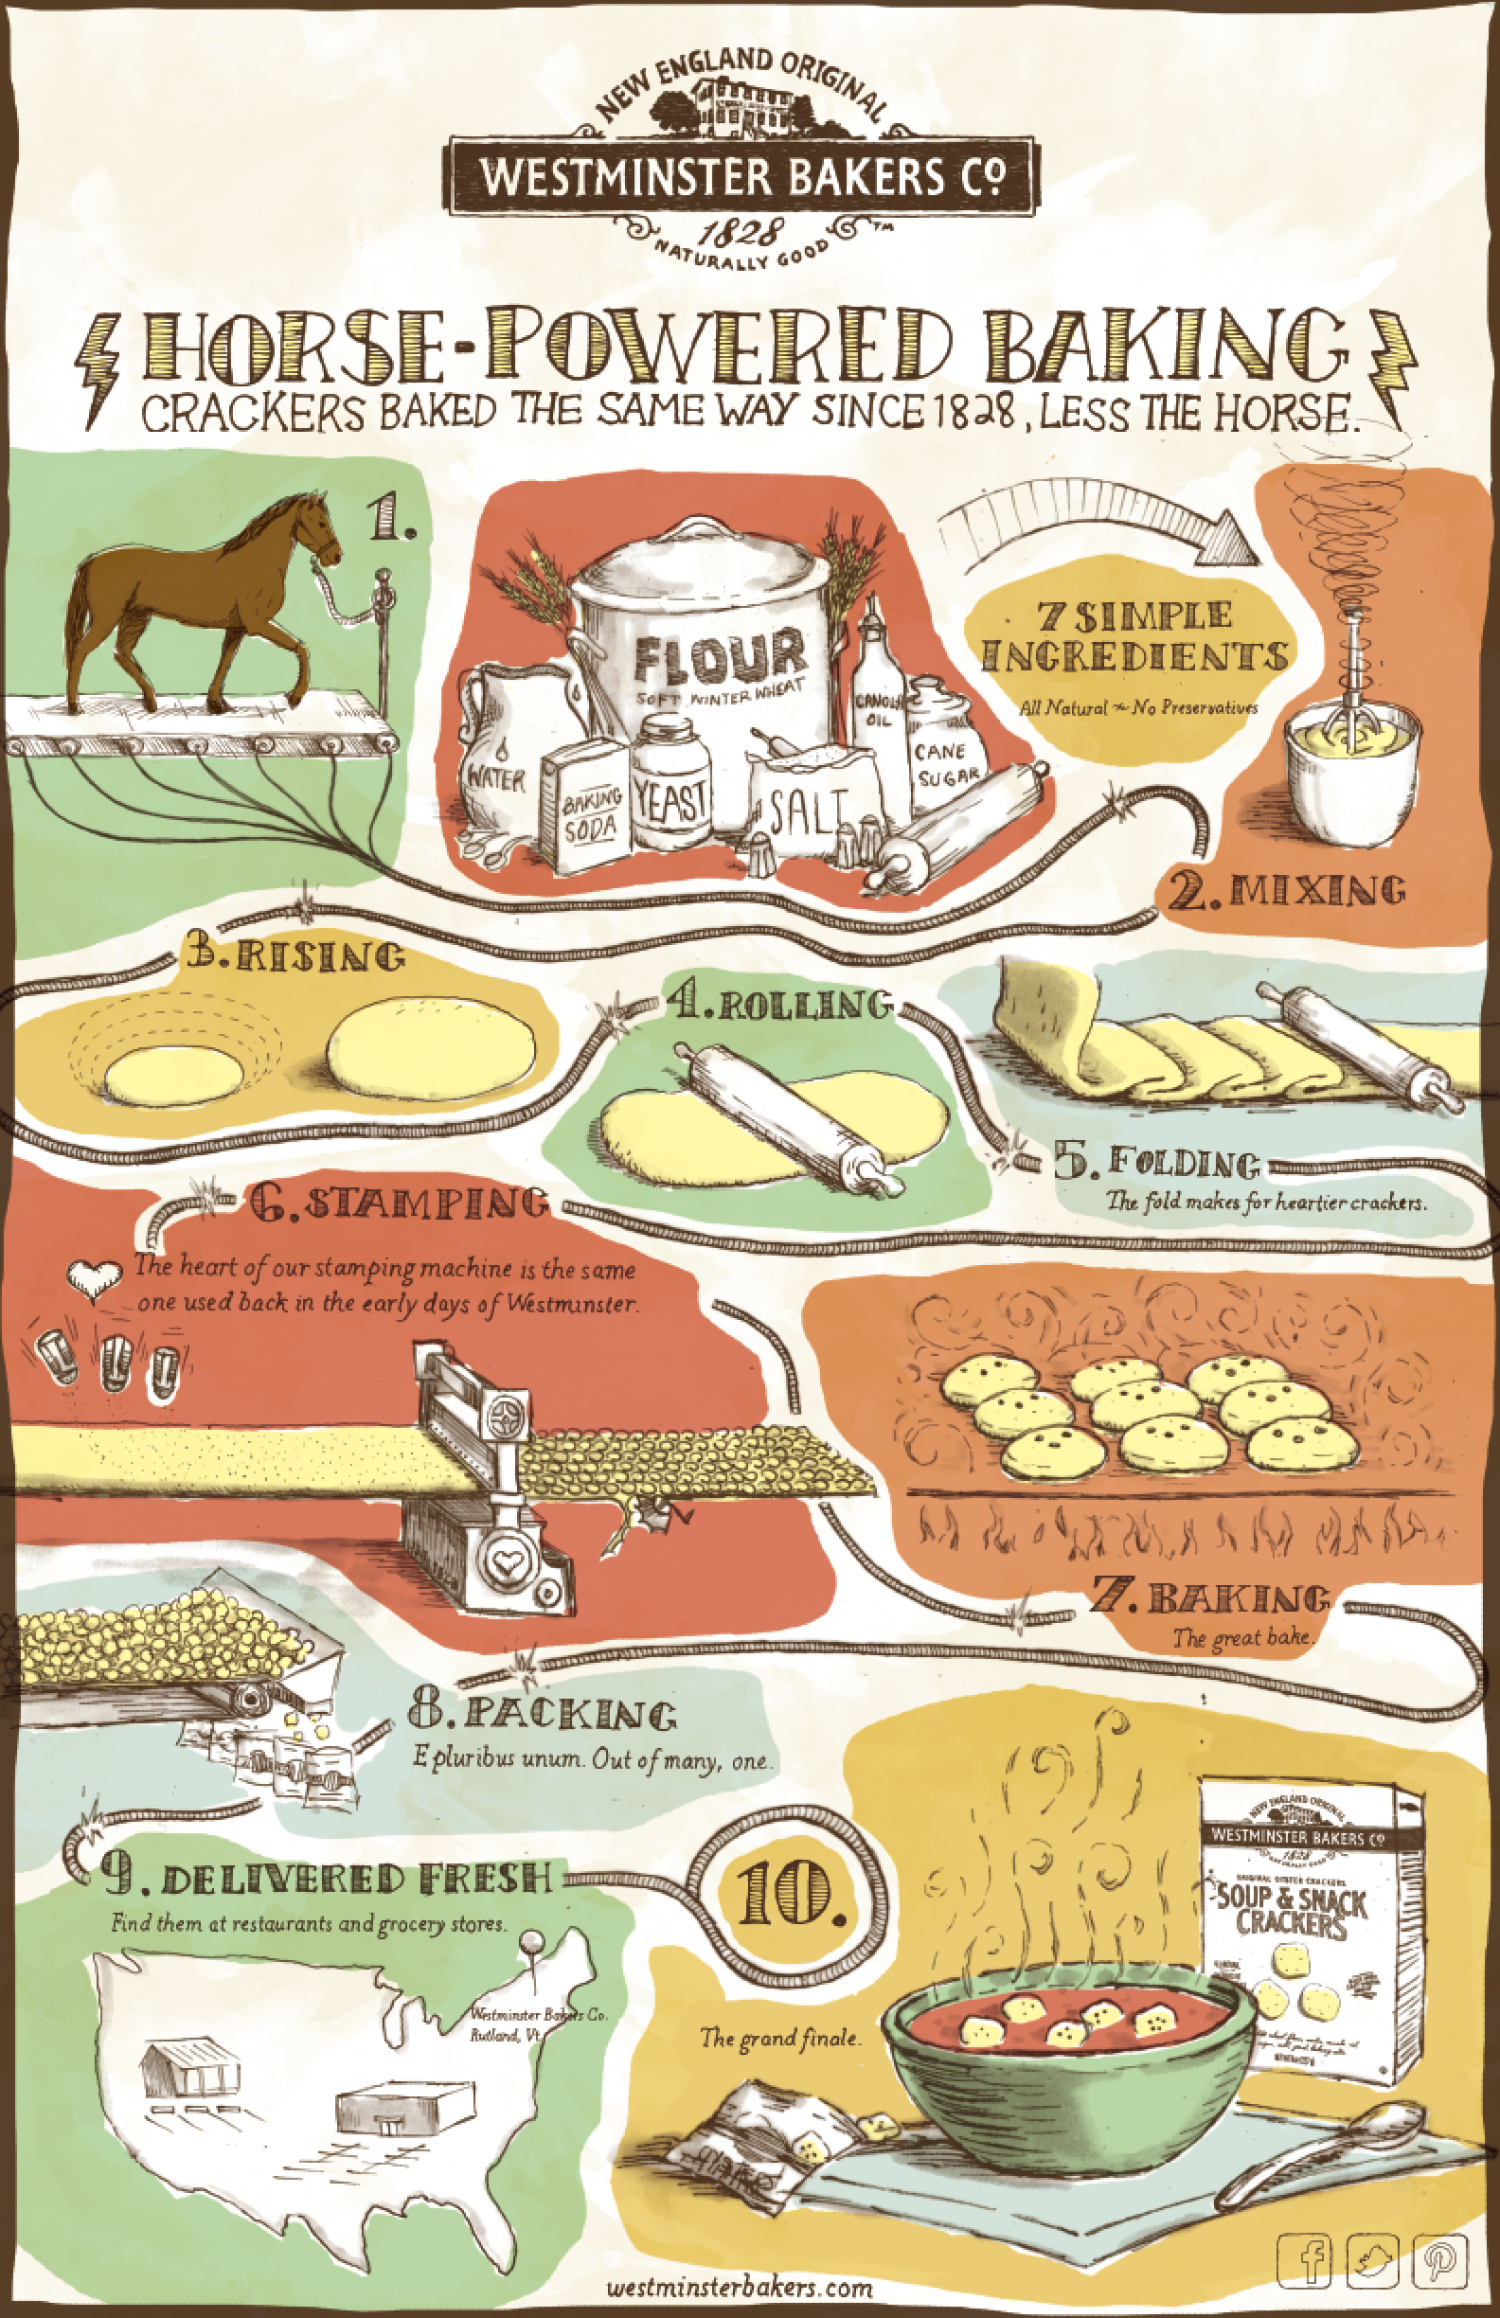 Westminster Bakers Horse-Powered Baking Infographic